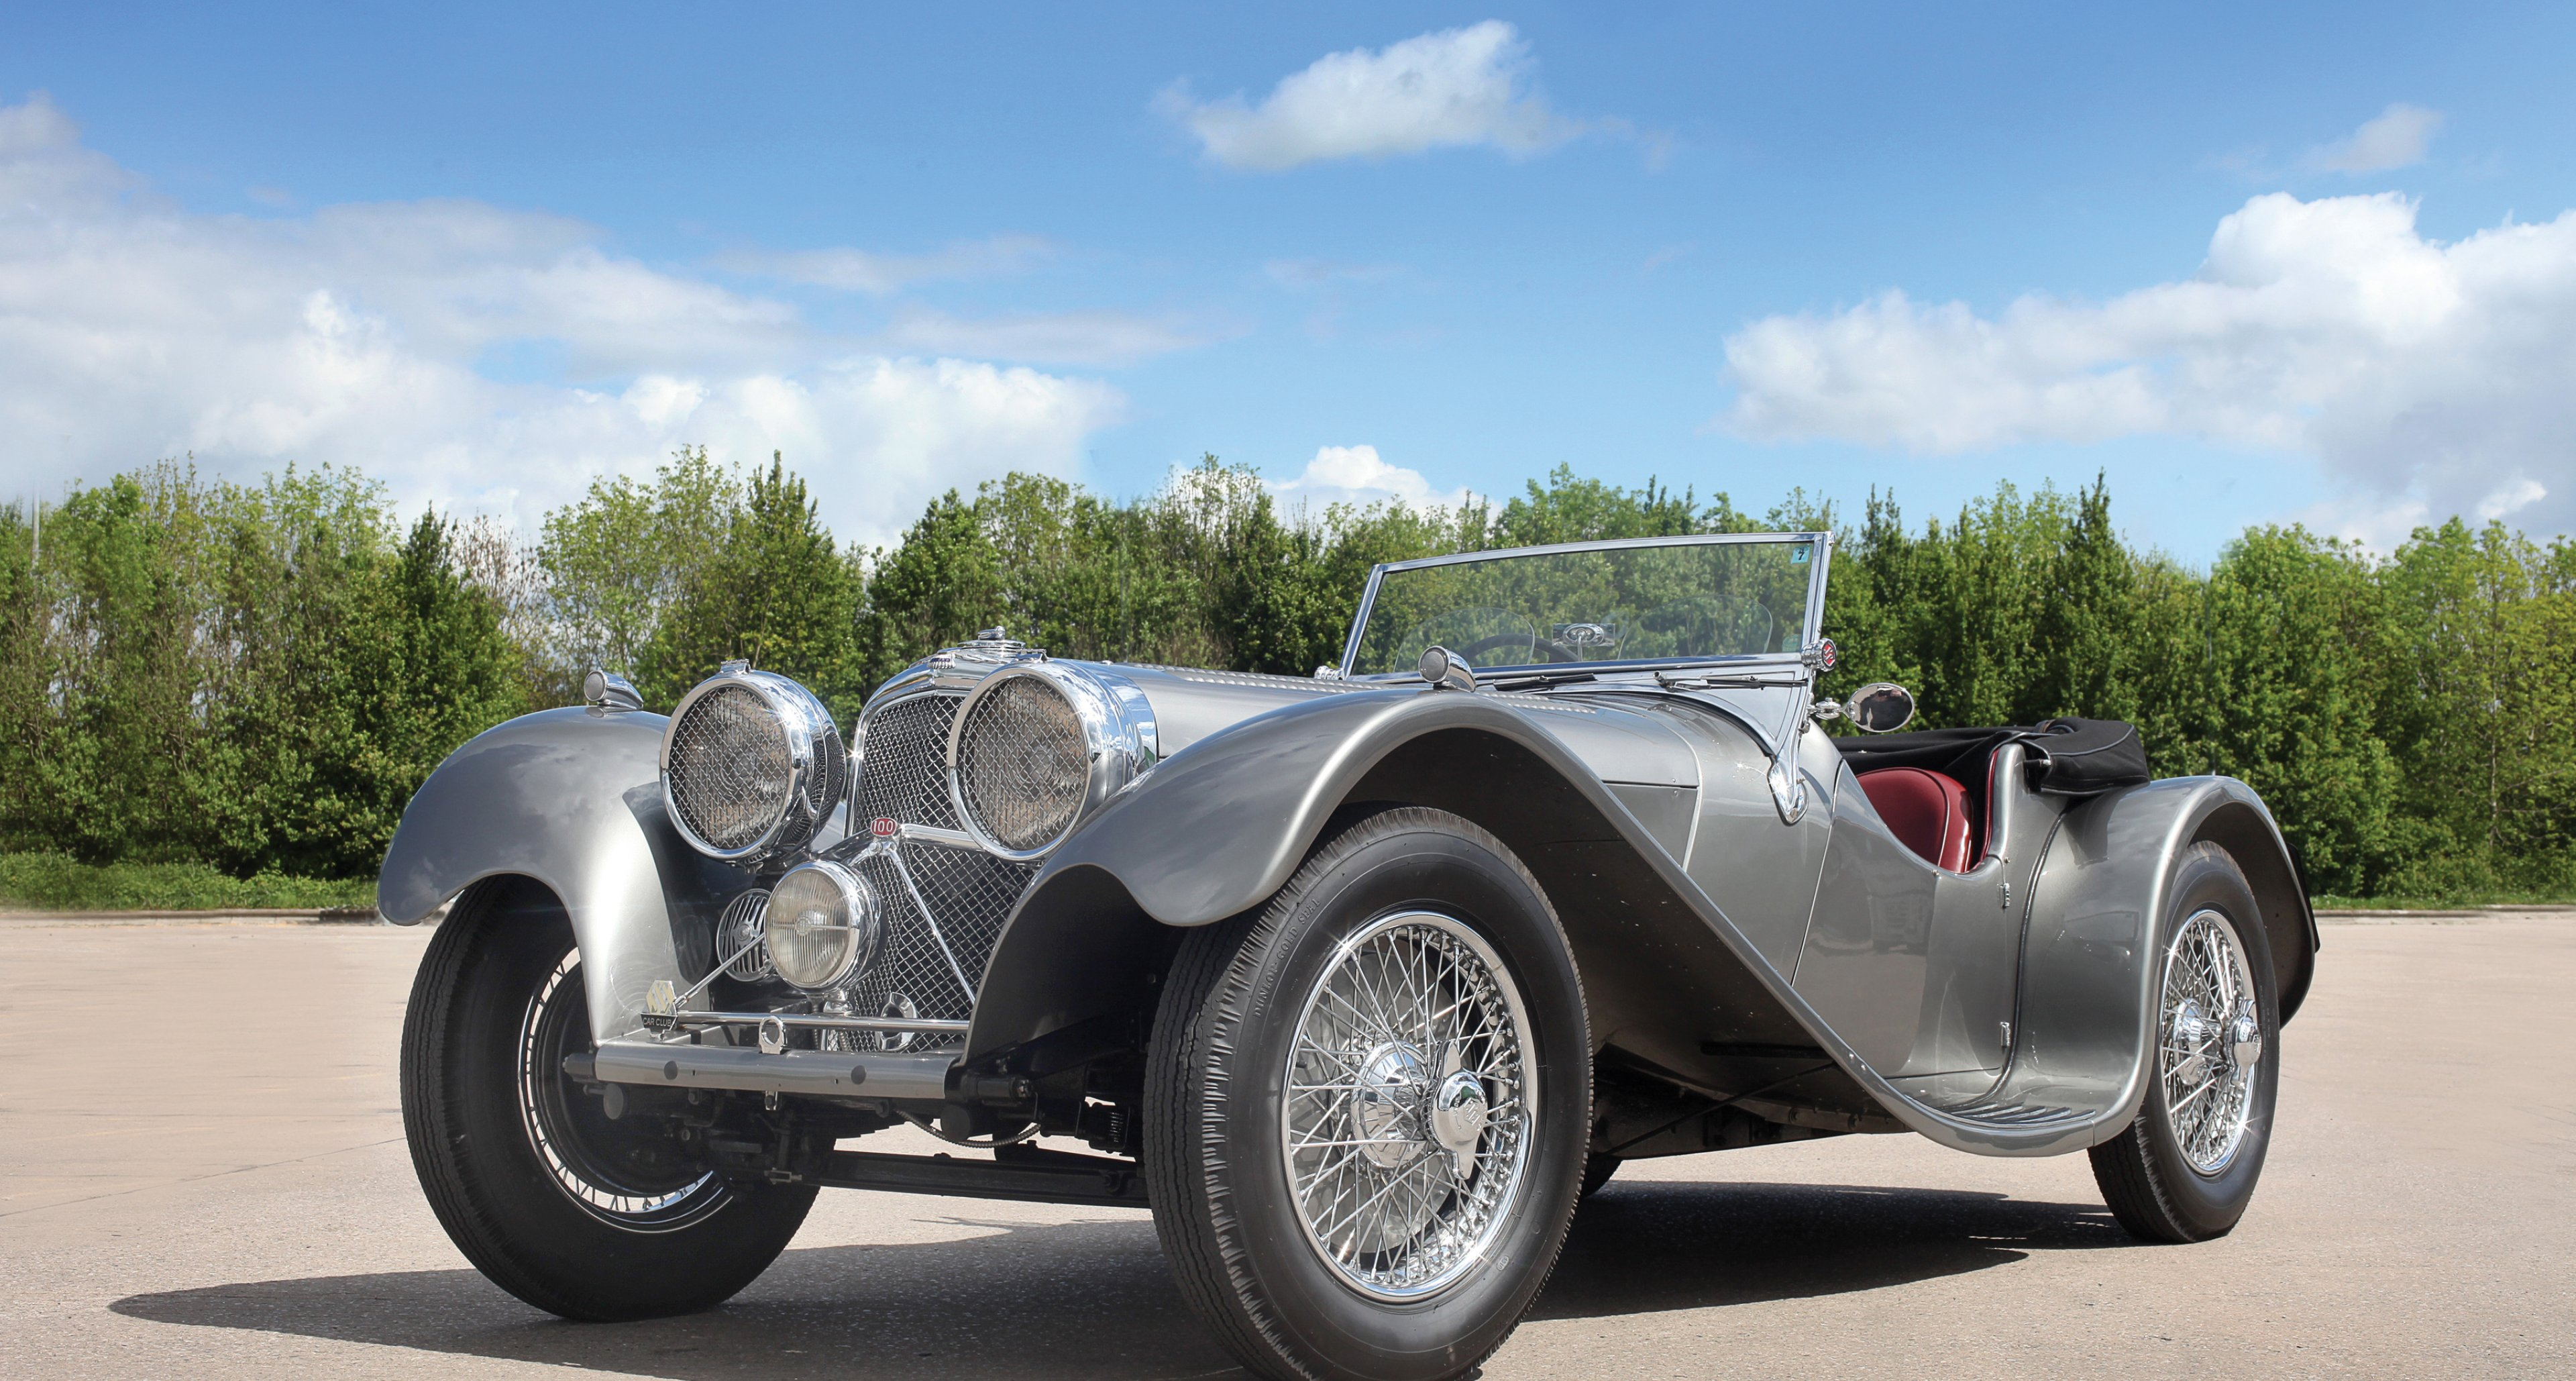 1937 SS 100 Jaguar 2½-Litre Roadster to be auctioned at RM's Monterey auction 2014